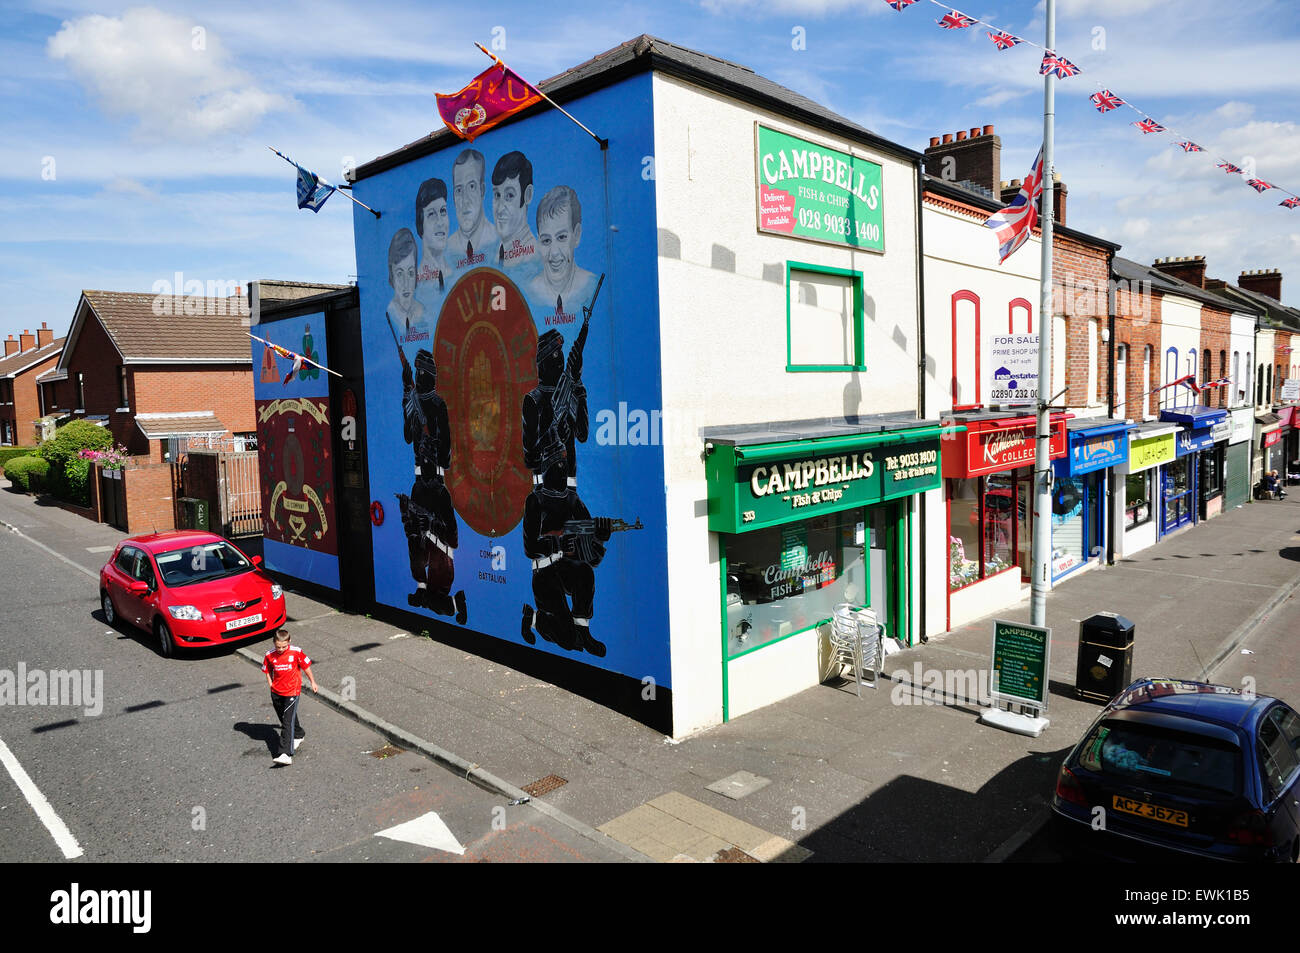 The Shankill Road runs through the predominantly loyalist working-class area known as the Shankill. Belfast. Northern - Stock Image